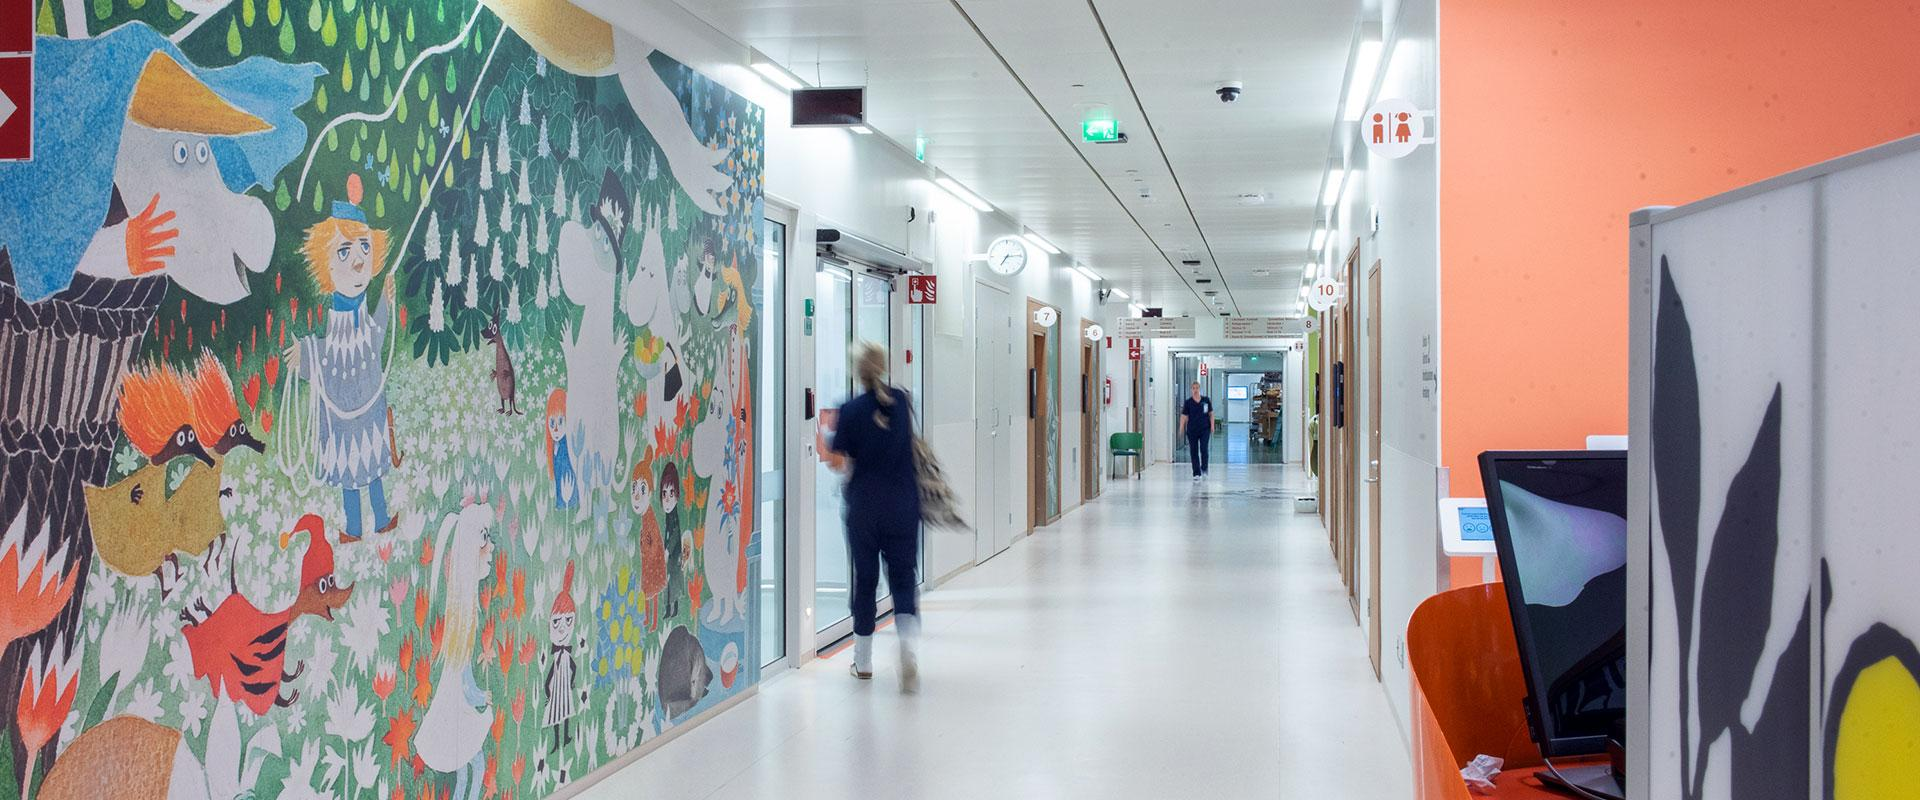 LED lighting for hospitals